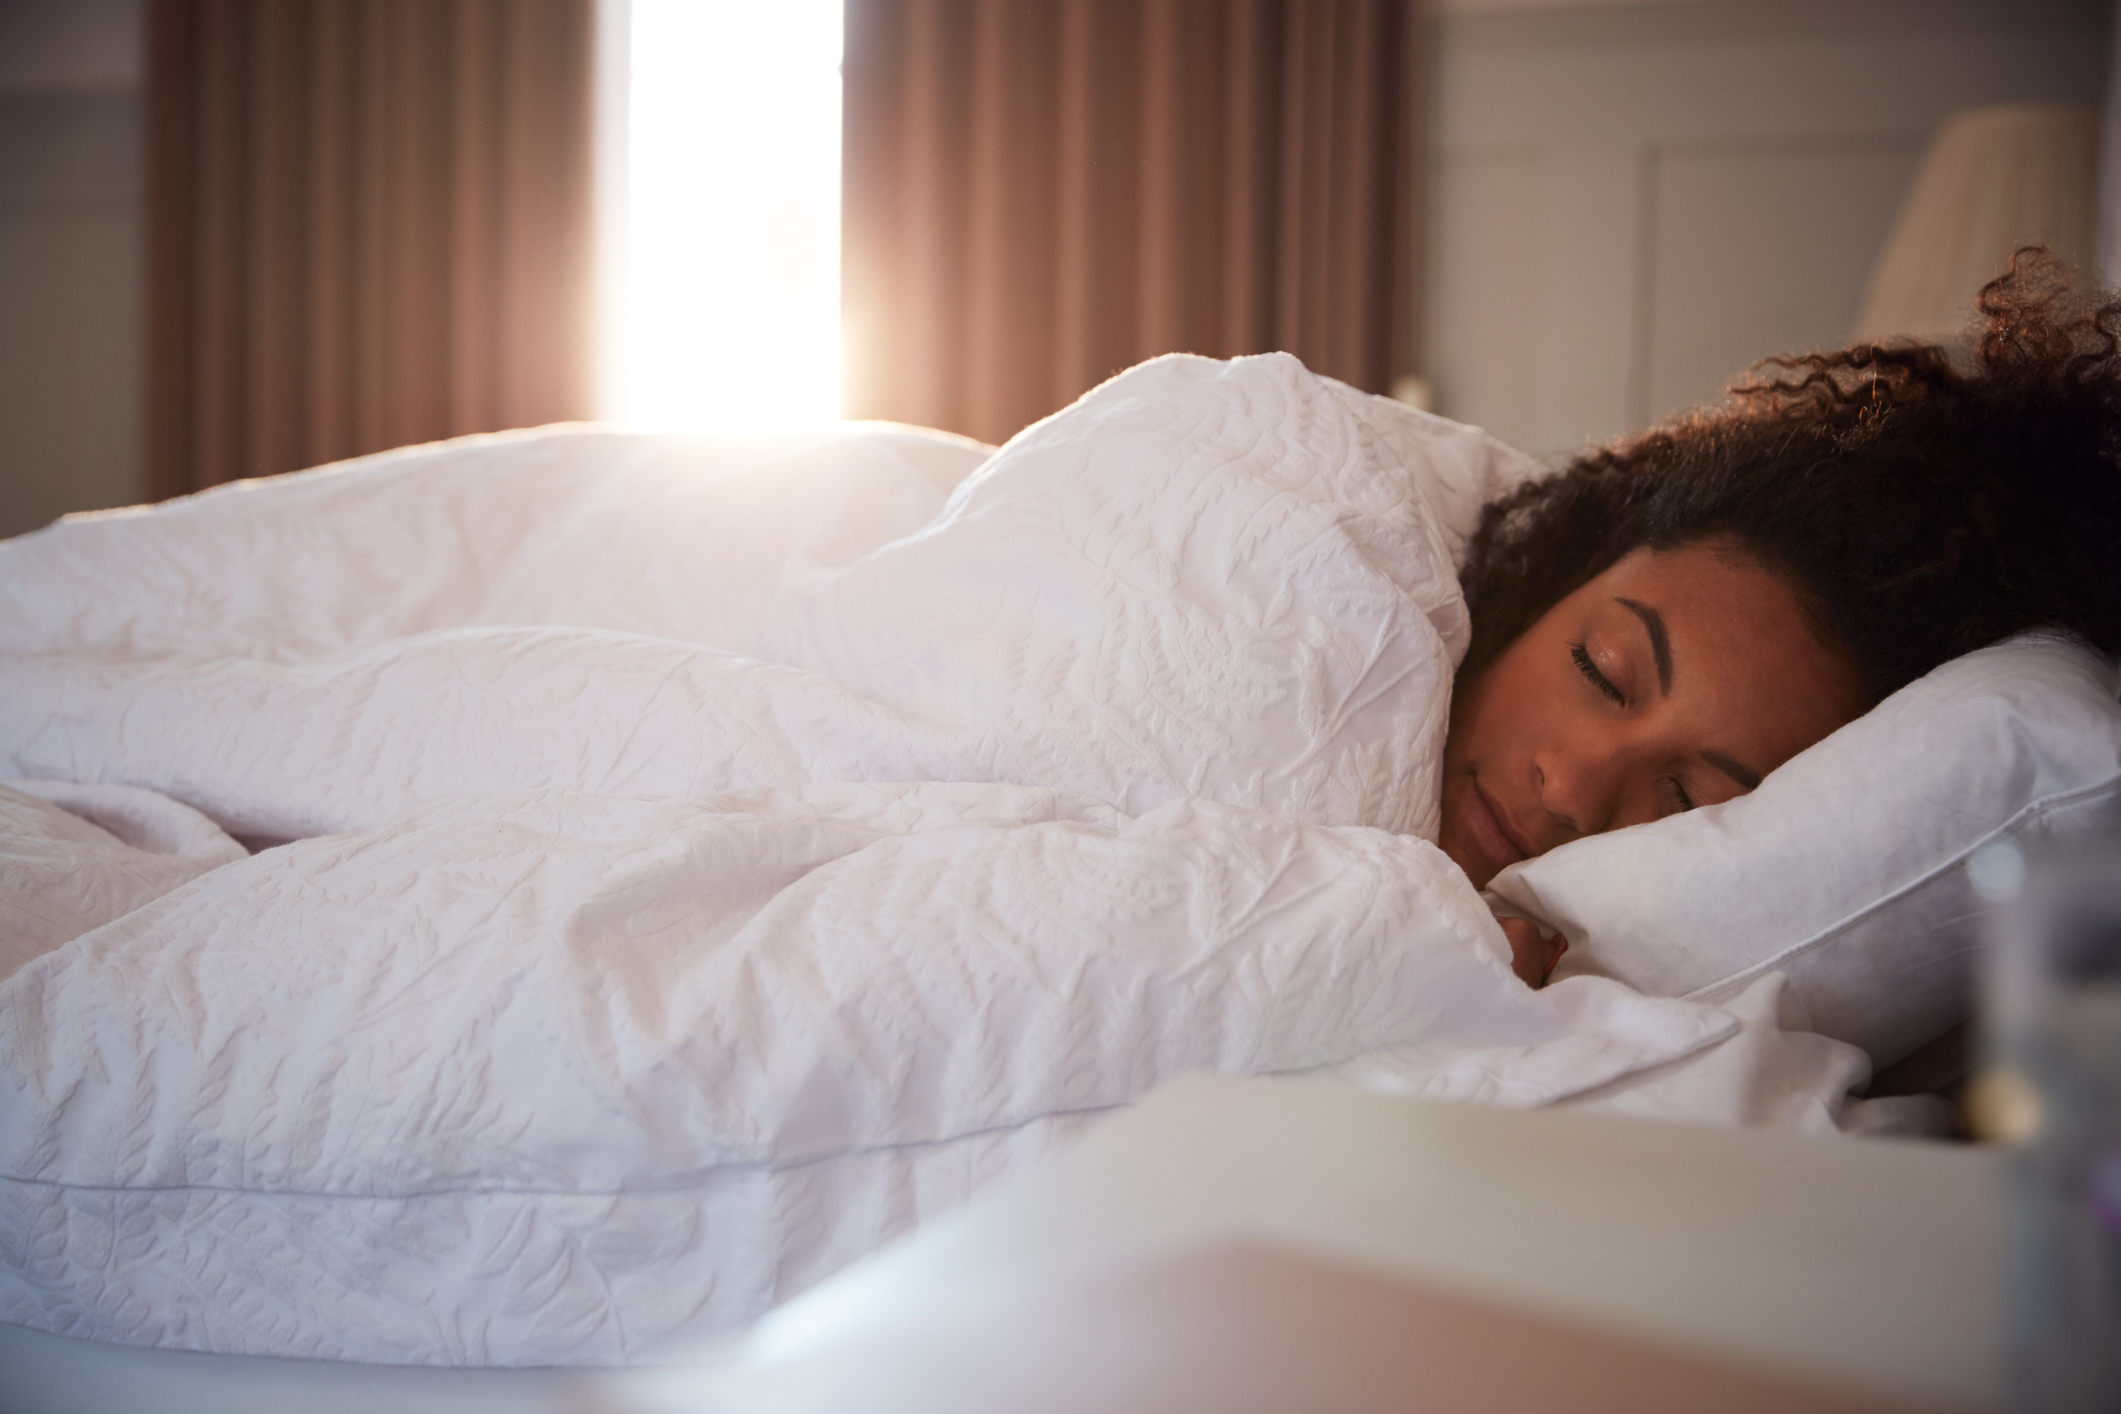 Peaceful woman sleeping in bed in duvet cover